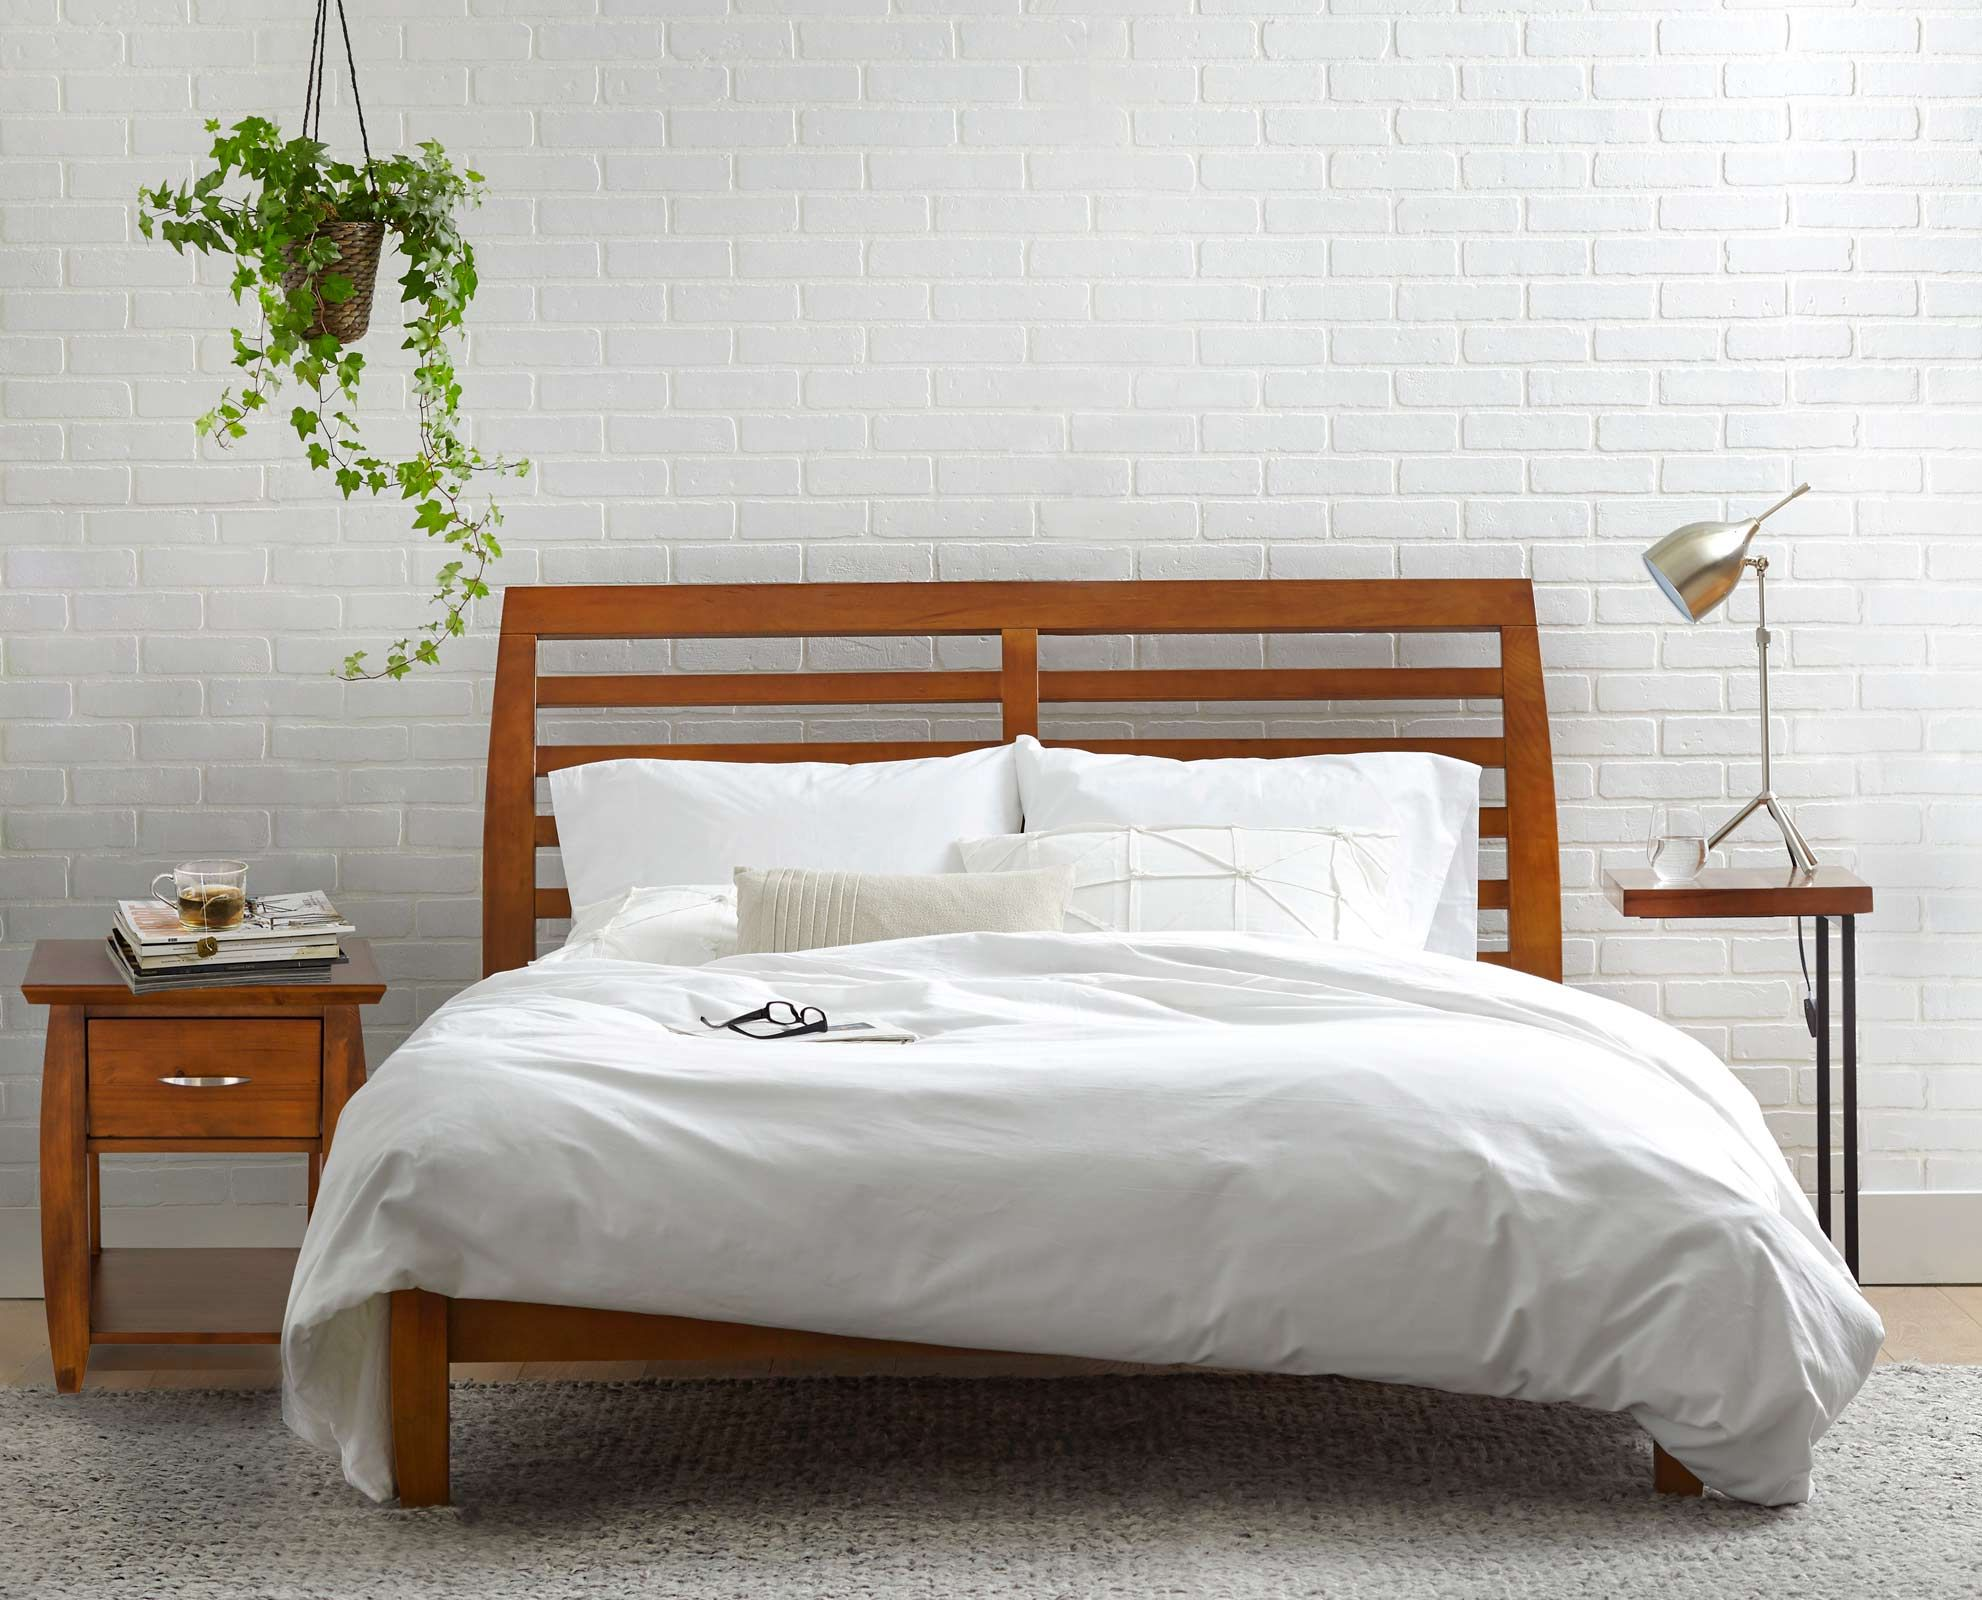 Scandinavian Designs Simple Clean Design Gives The Pasadena Collection A Crisp Contemporary Look Made Of N Bedroom Renovation Home Decor Bedroom Furniture